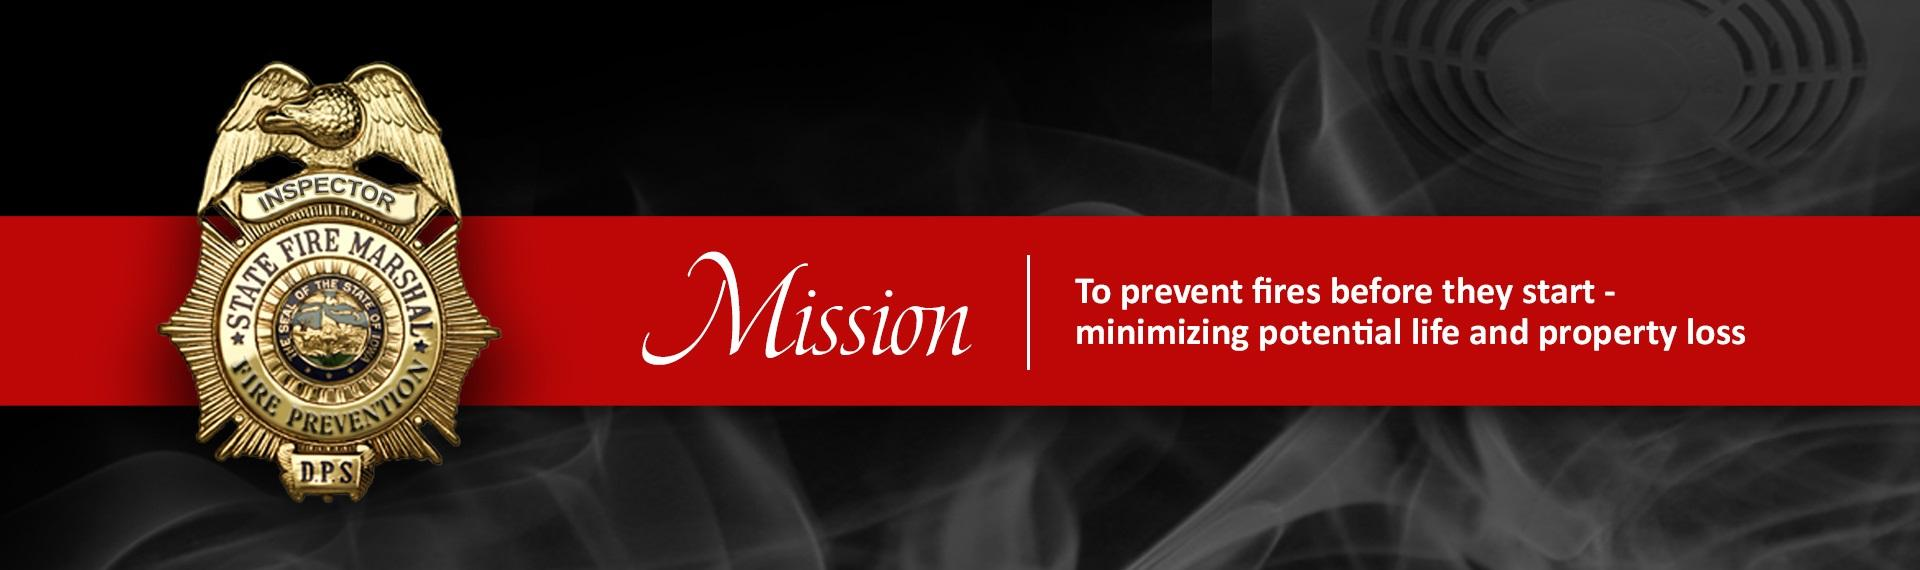 Fire inspector badge with bureau mission to prevent fires before they start-minimizing potential life and property loss.